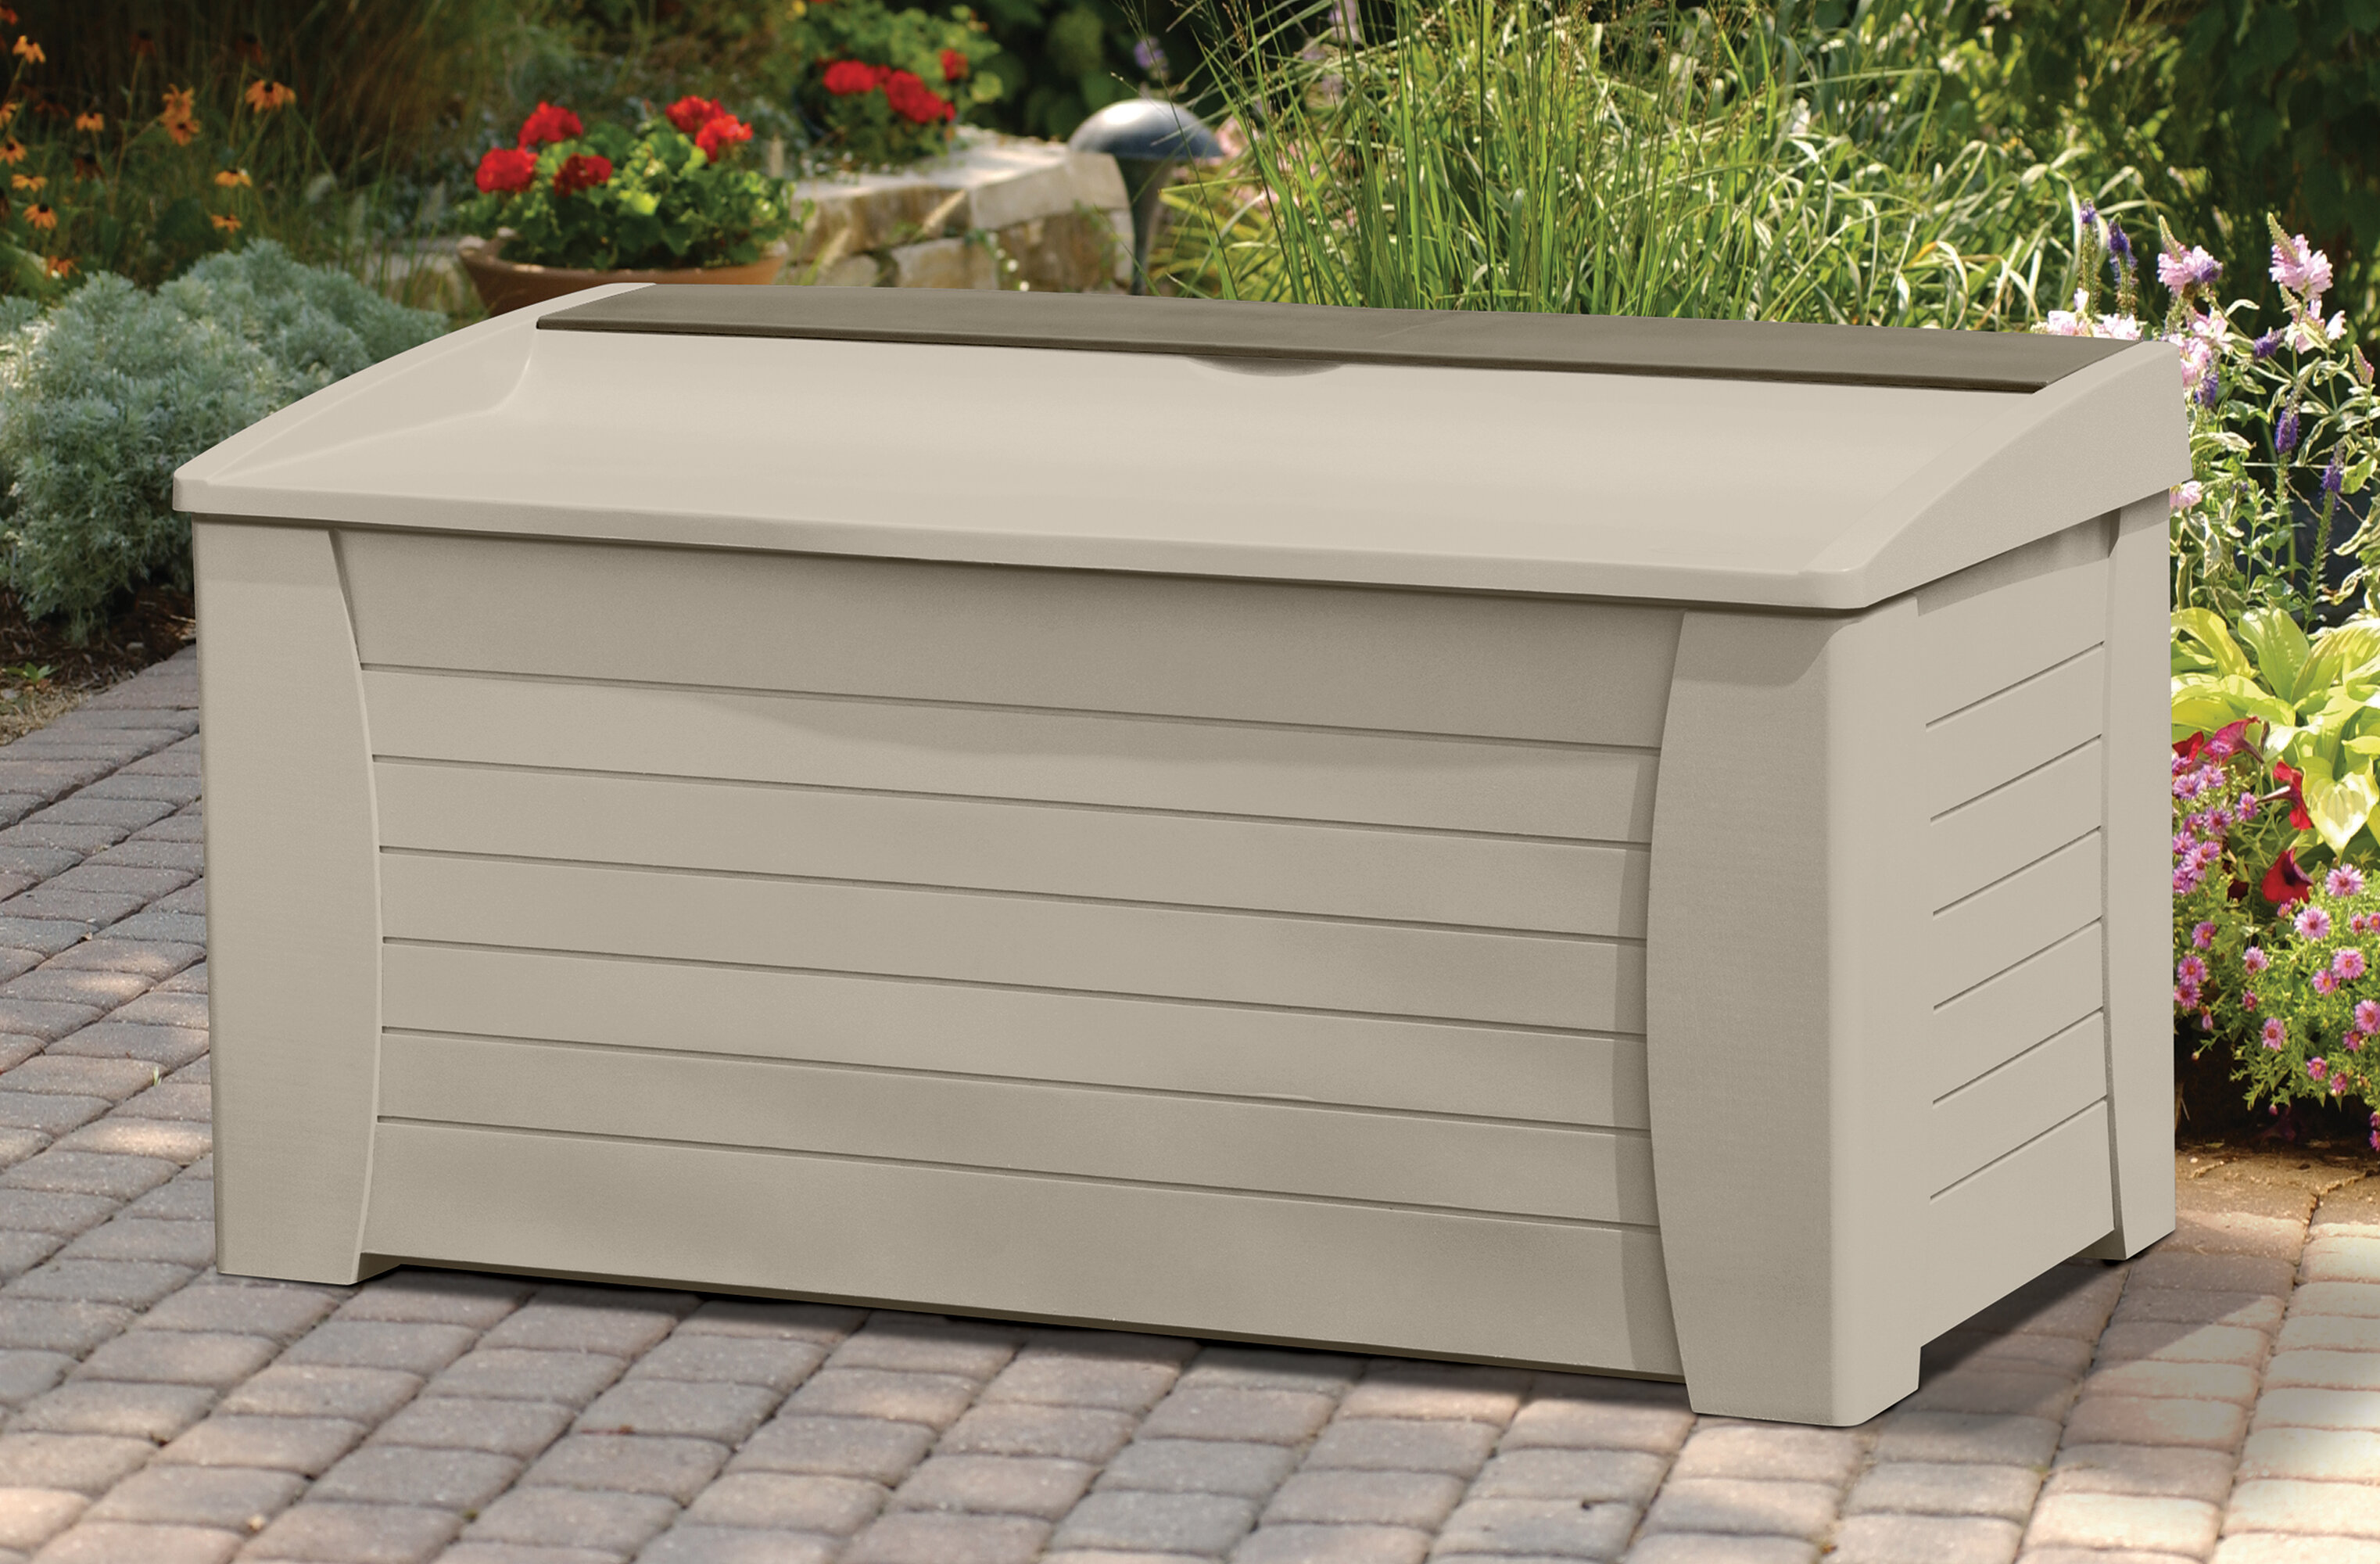 shed chest pool backyard patio bins wicker cabinet balcony wooden storage small bin boxes outdoor wood exterior rubbermaid deck box sale bench garden